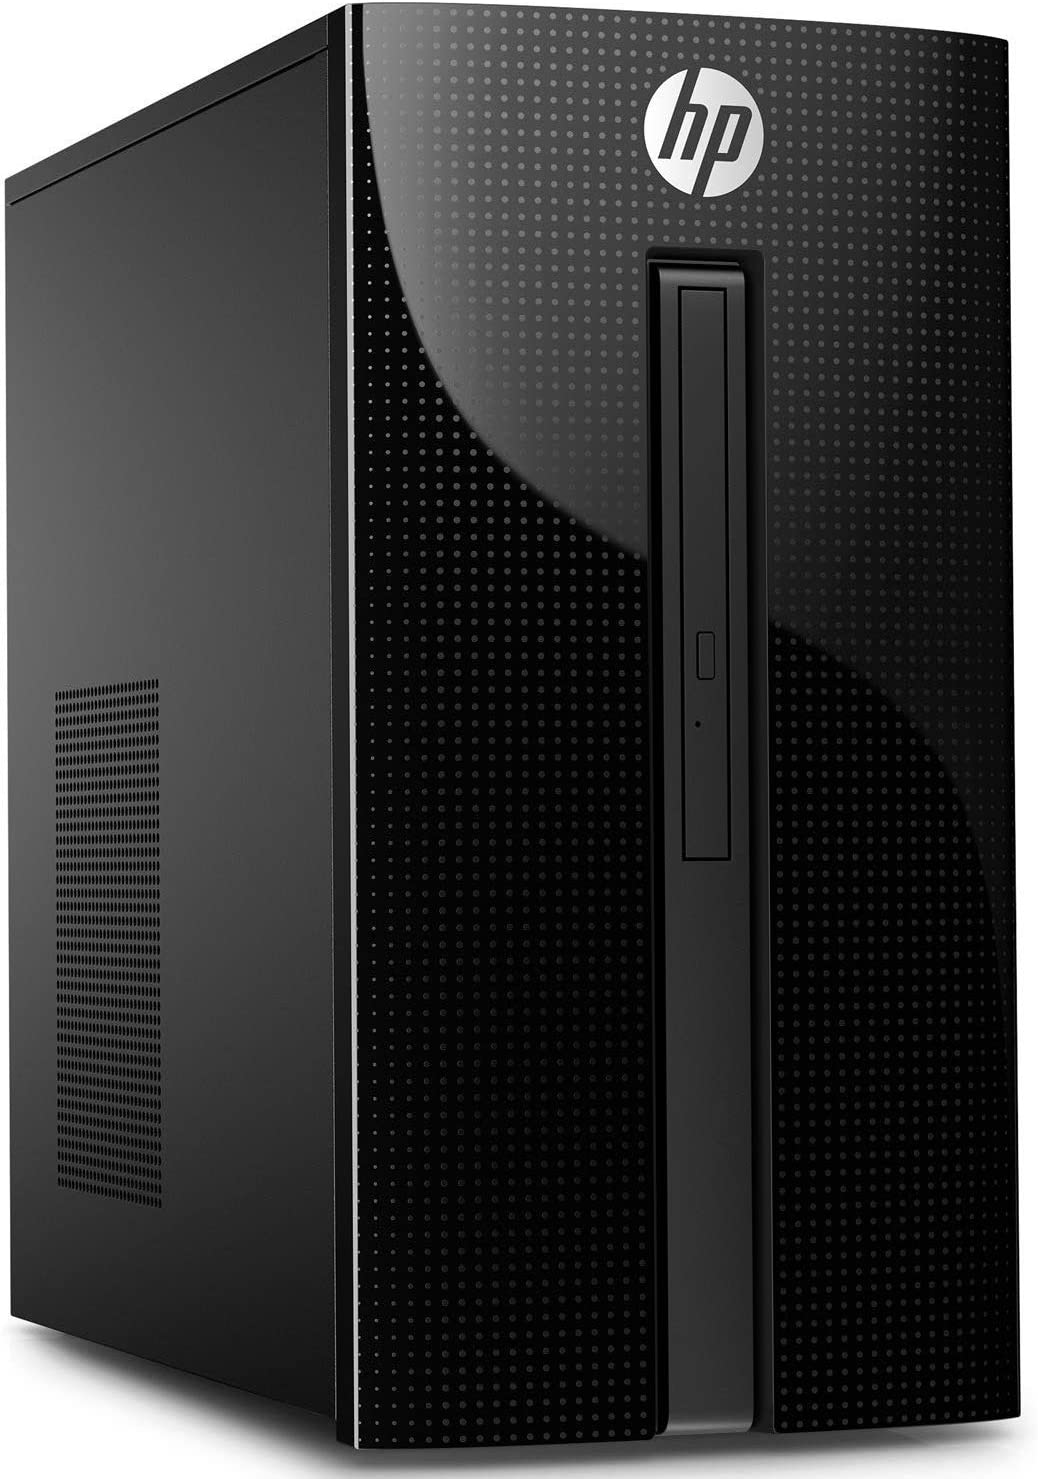 HP 460 Desktop Computer, Intel Quad-Core i7-7700T 2.9GHz Upto 3.8GHz, 32GB RAM, 1TB SSD, DVDRW, HDMI, VGA, Wi-Fi, Bluetooth, Windows 10 Home 64